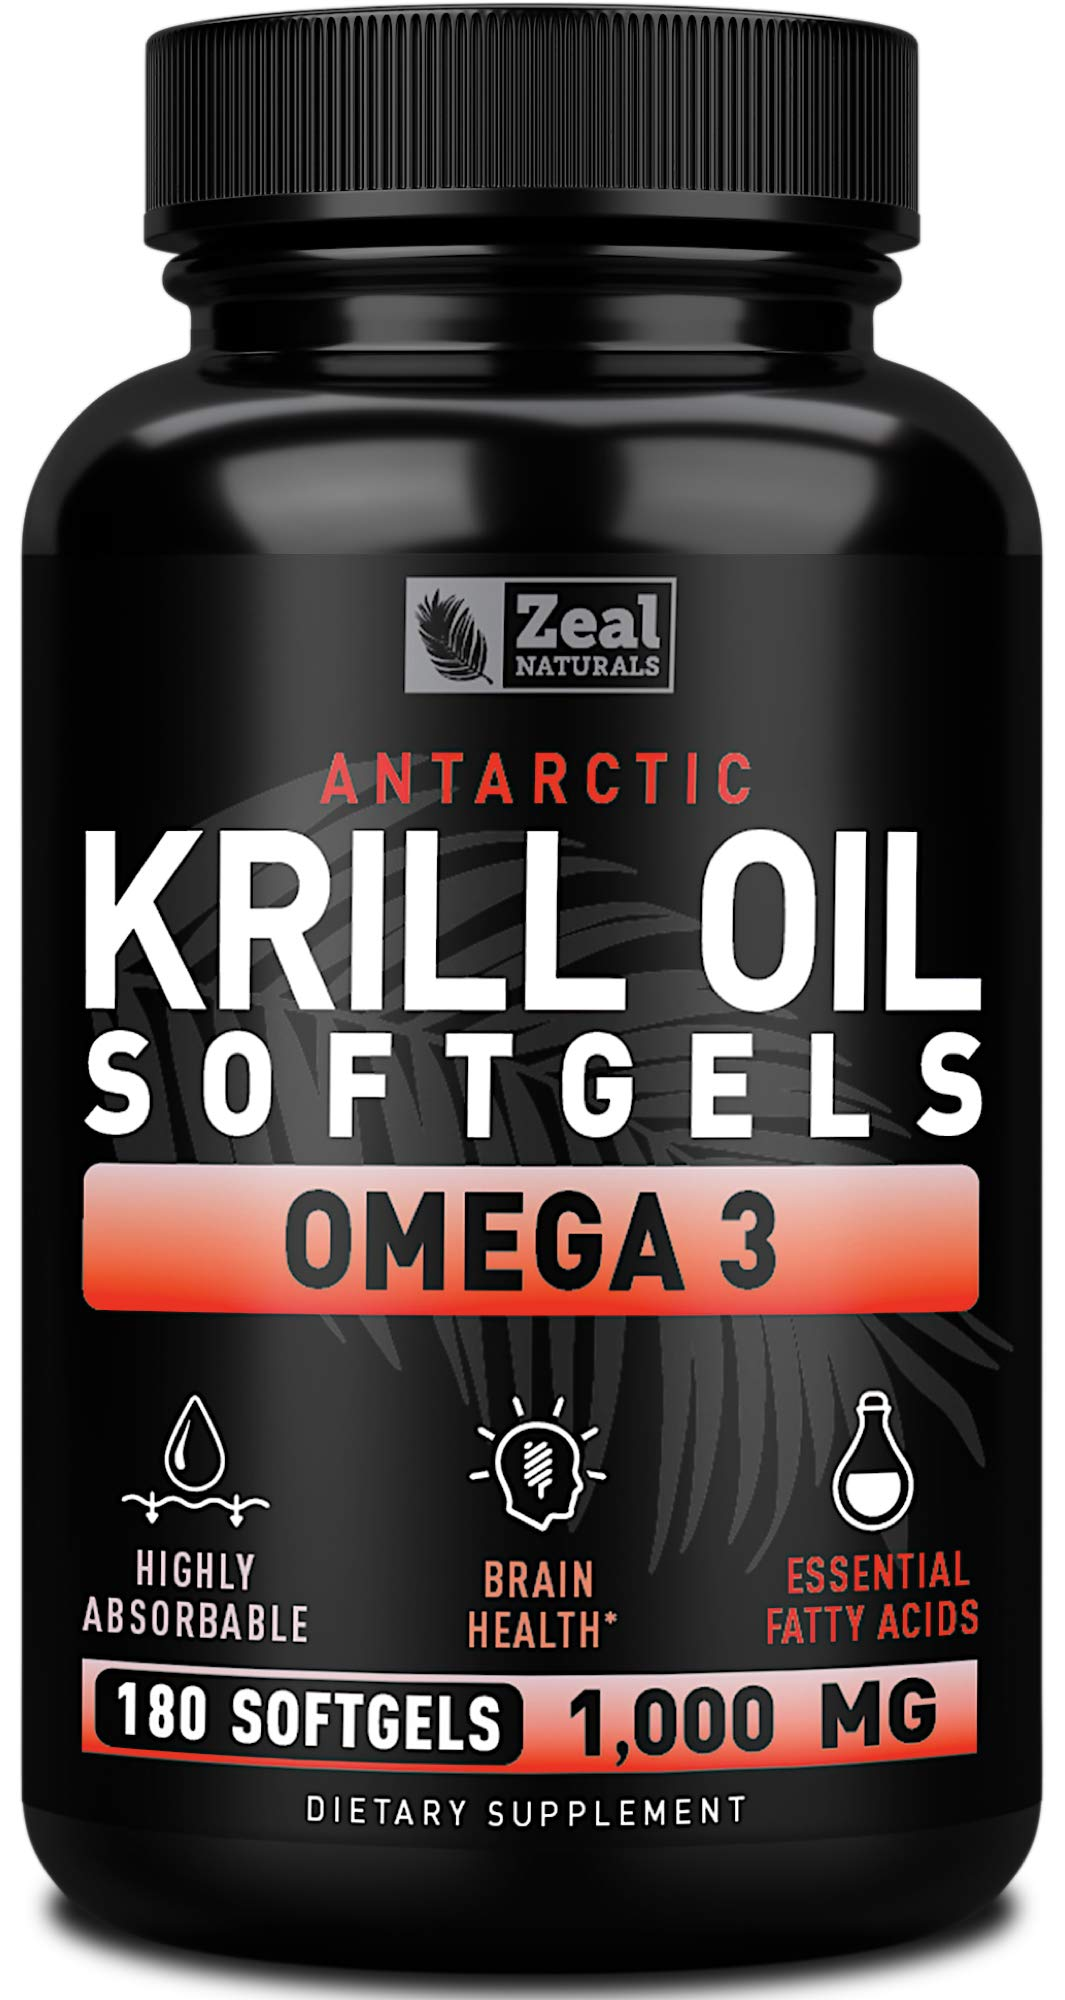 Pure Antarctic Krill Oil 1000mg (180 Softgels) 3 Month Supply Omega 3 Krill Oil Supplement with EPA, DHA & Astaxanthin - Omega 3 Fish Oil for Joint, Brain, and, Heart Support